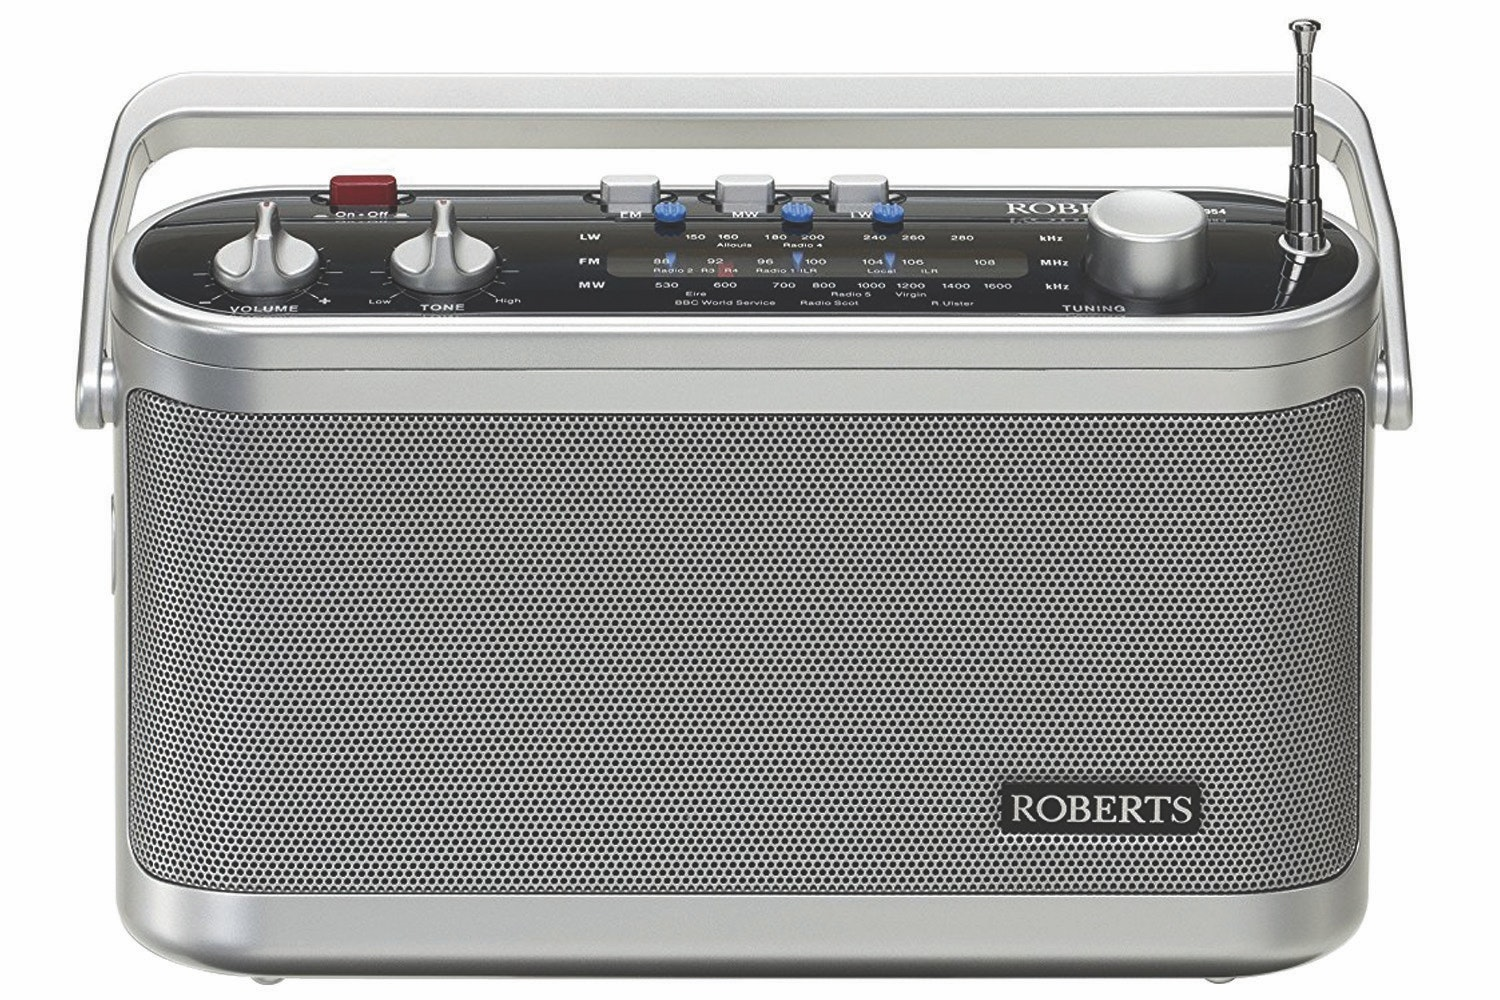 Roberts Classic 3 Band Portable Radio | R9954